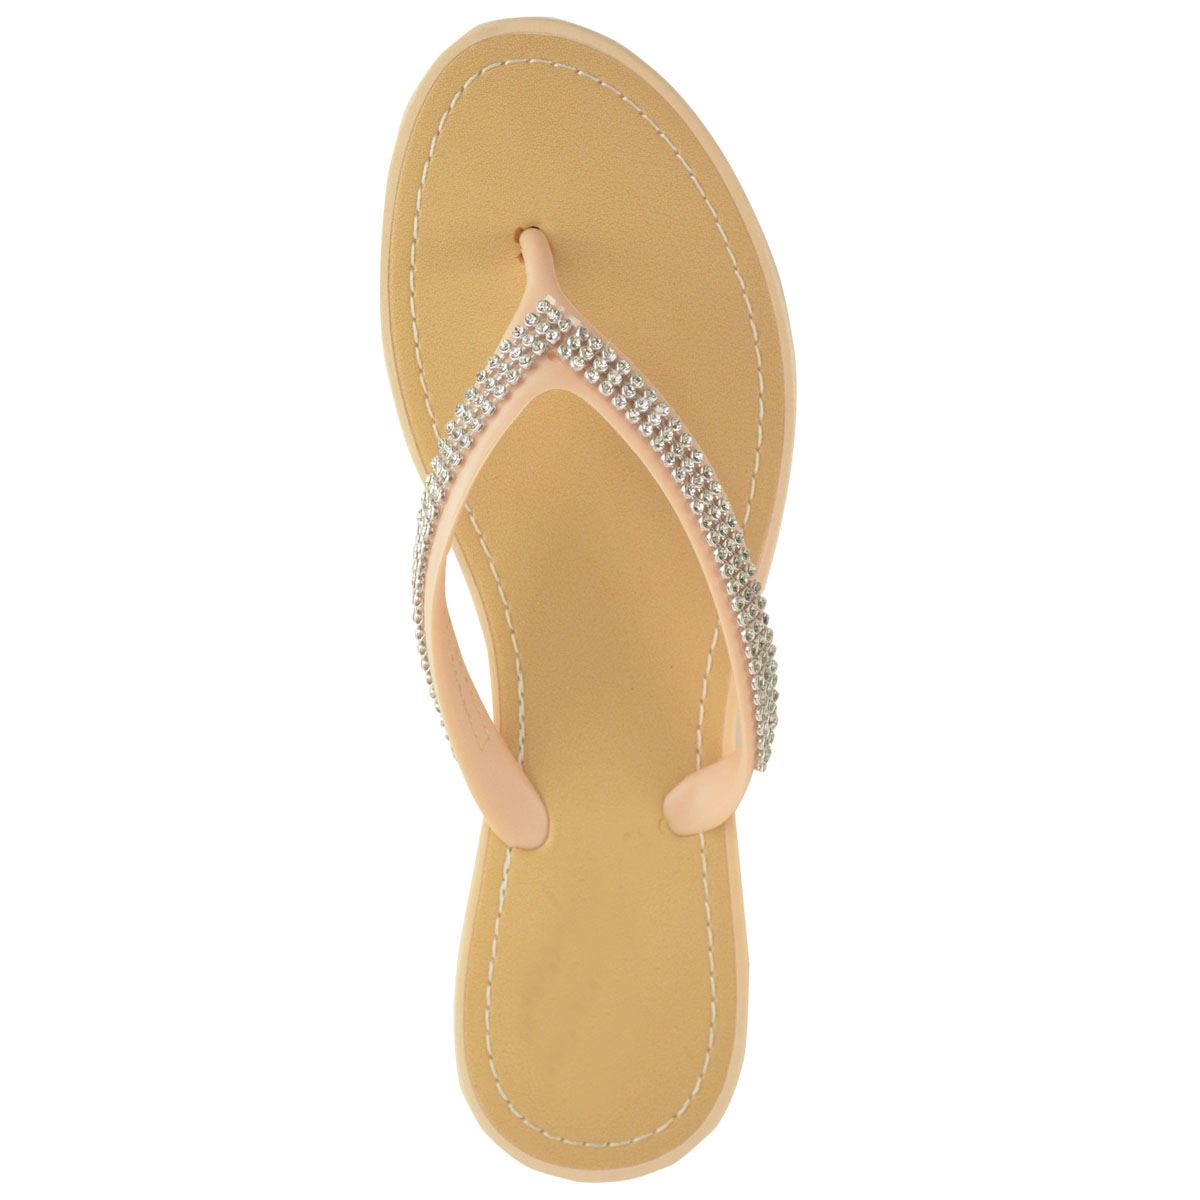 NEW-JELLY-SANDALS-WOMENS-LADIES-DIAMANTE-SUMMER-HOLIDAY-COMFORTS-FLIP-FLOPS-SIZE thumbnail 59